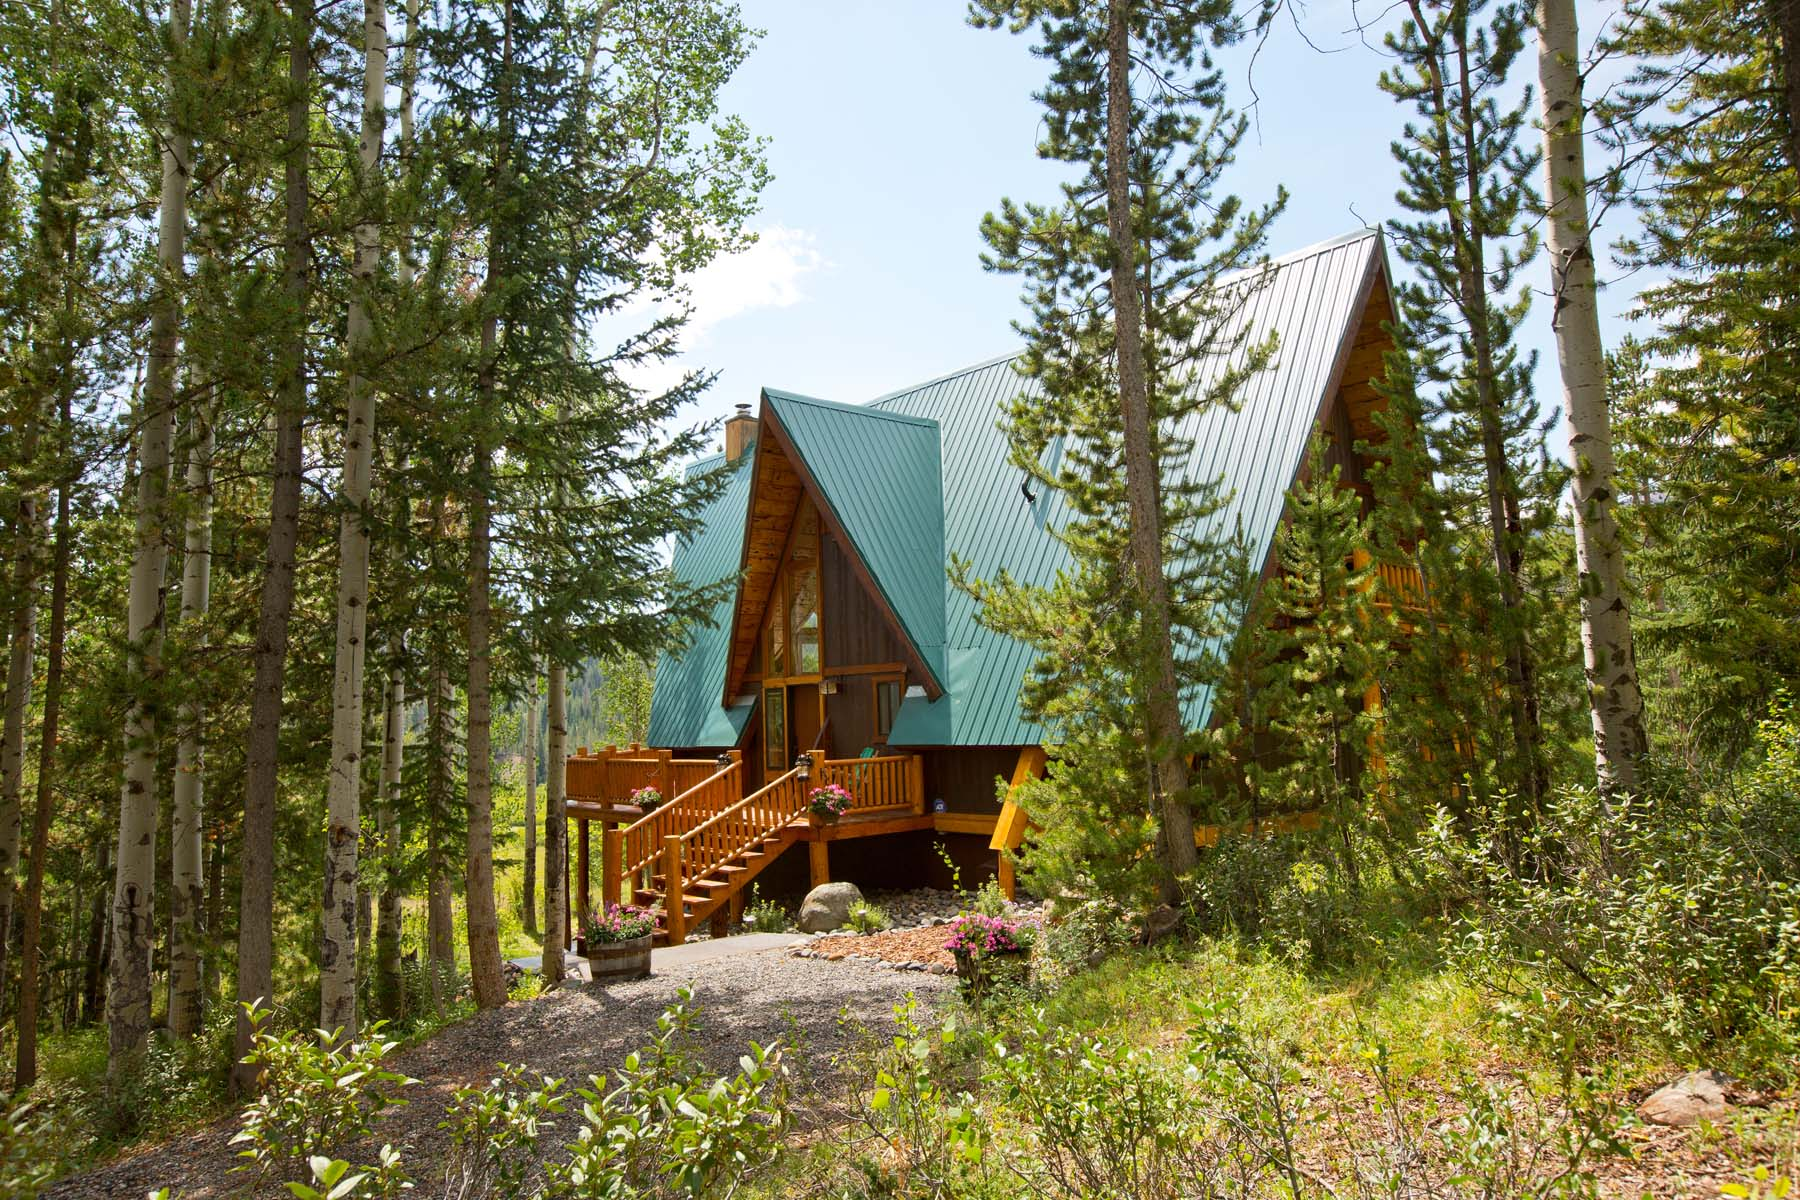 Moradia para Venda às The Ideal Outdoorsman's Retreat 38 Roaring River Drive Dubois, Wyoming, 82513 Jackson Hole, Estados Unidos